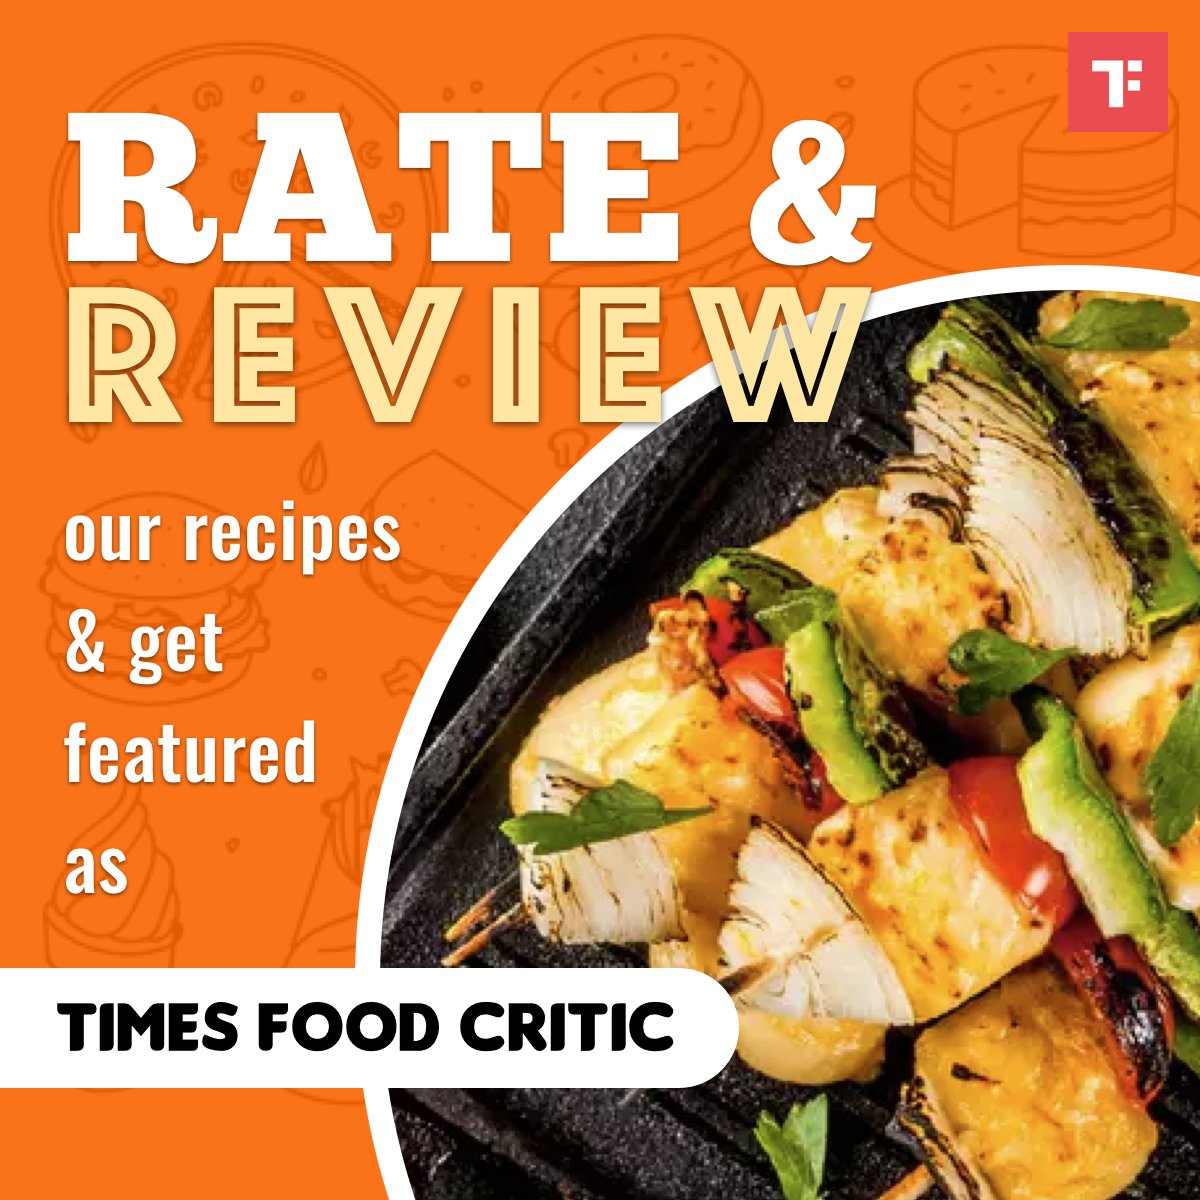 Are you fond of Paneer? If yes, then here's your chance to be entitled as  'Times Food Critic' of the week! RATE & REVIEW our recipes daily from our collection of 'Paneer' Recipes here: https://t.co/ZyTlkrGE3H  #TimesFoodCritic #RateAndReview https://t.co/84icAUZB7F